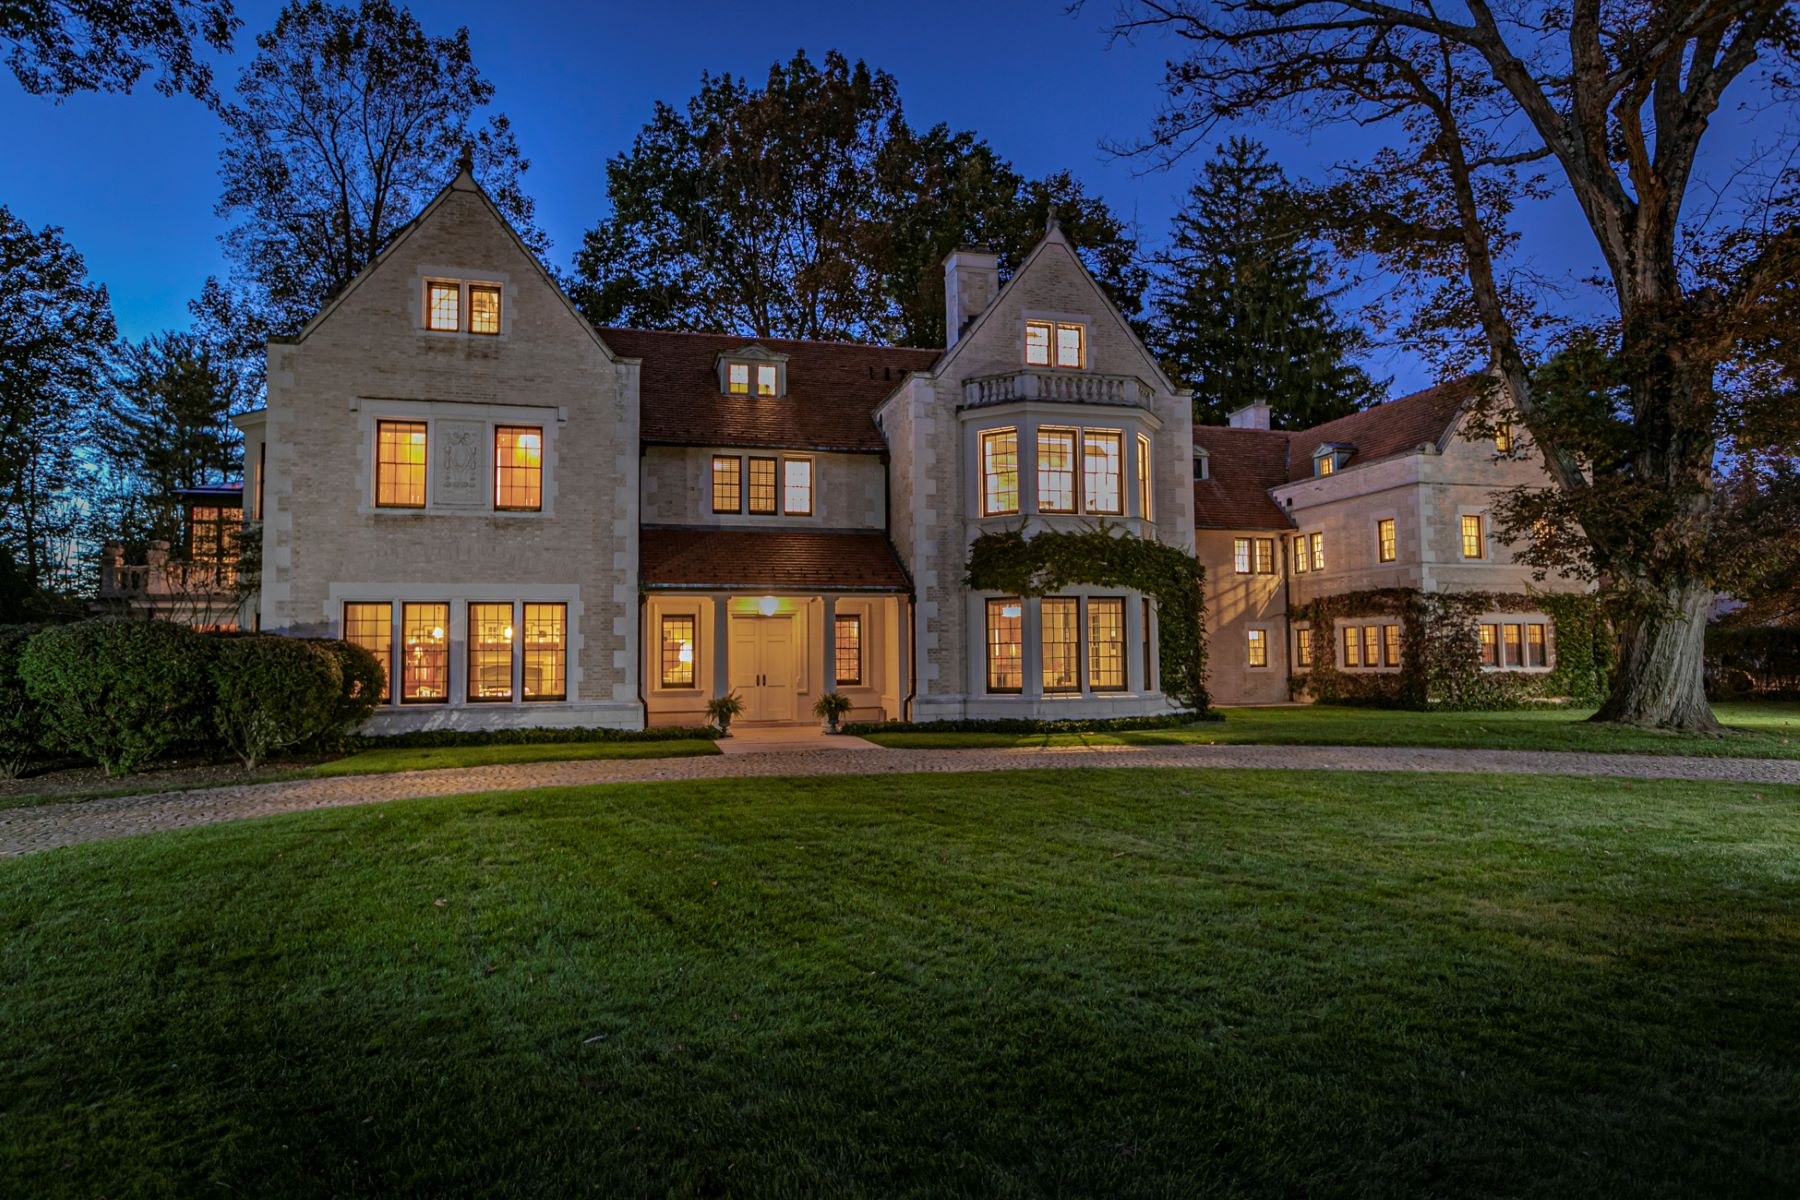 Single Family Homes pour l Vente à Historic Pyne Mansion 211 Winant Road, Princeton, New Jersey 08540 États-Unis